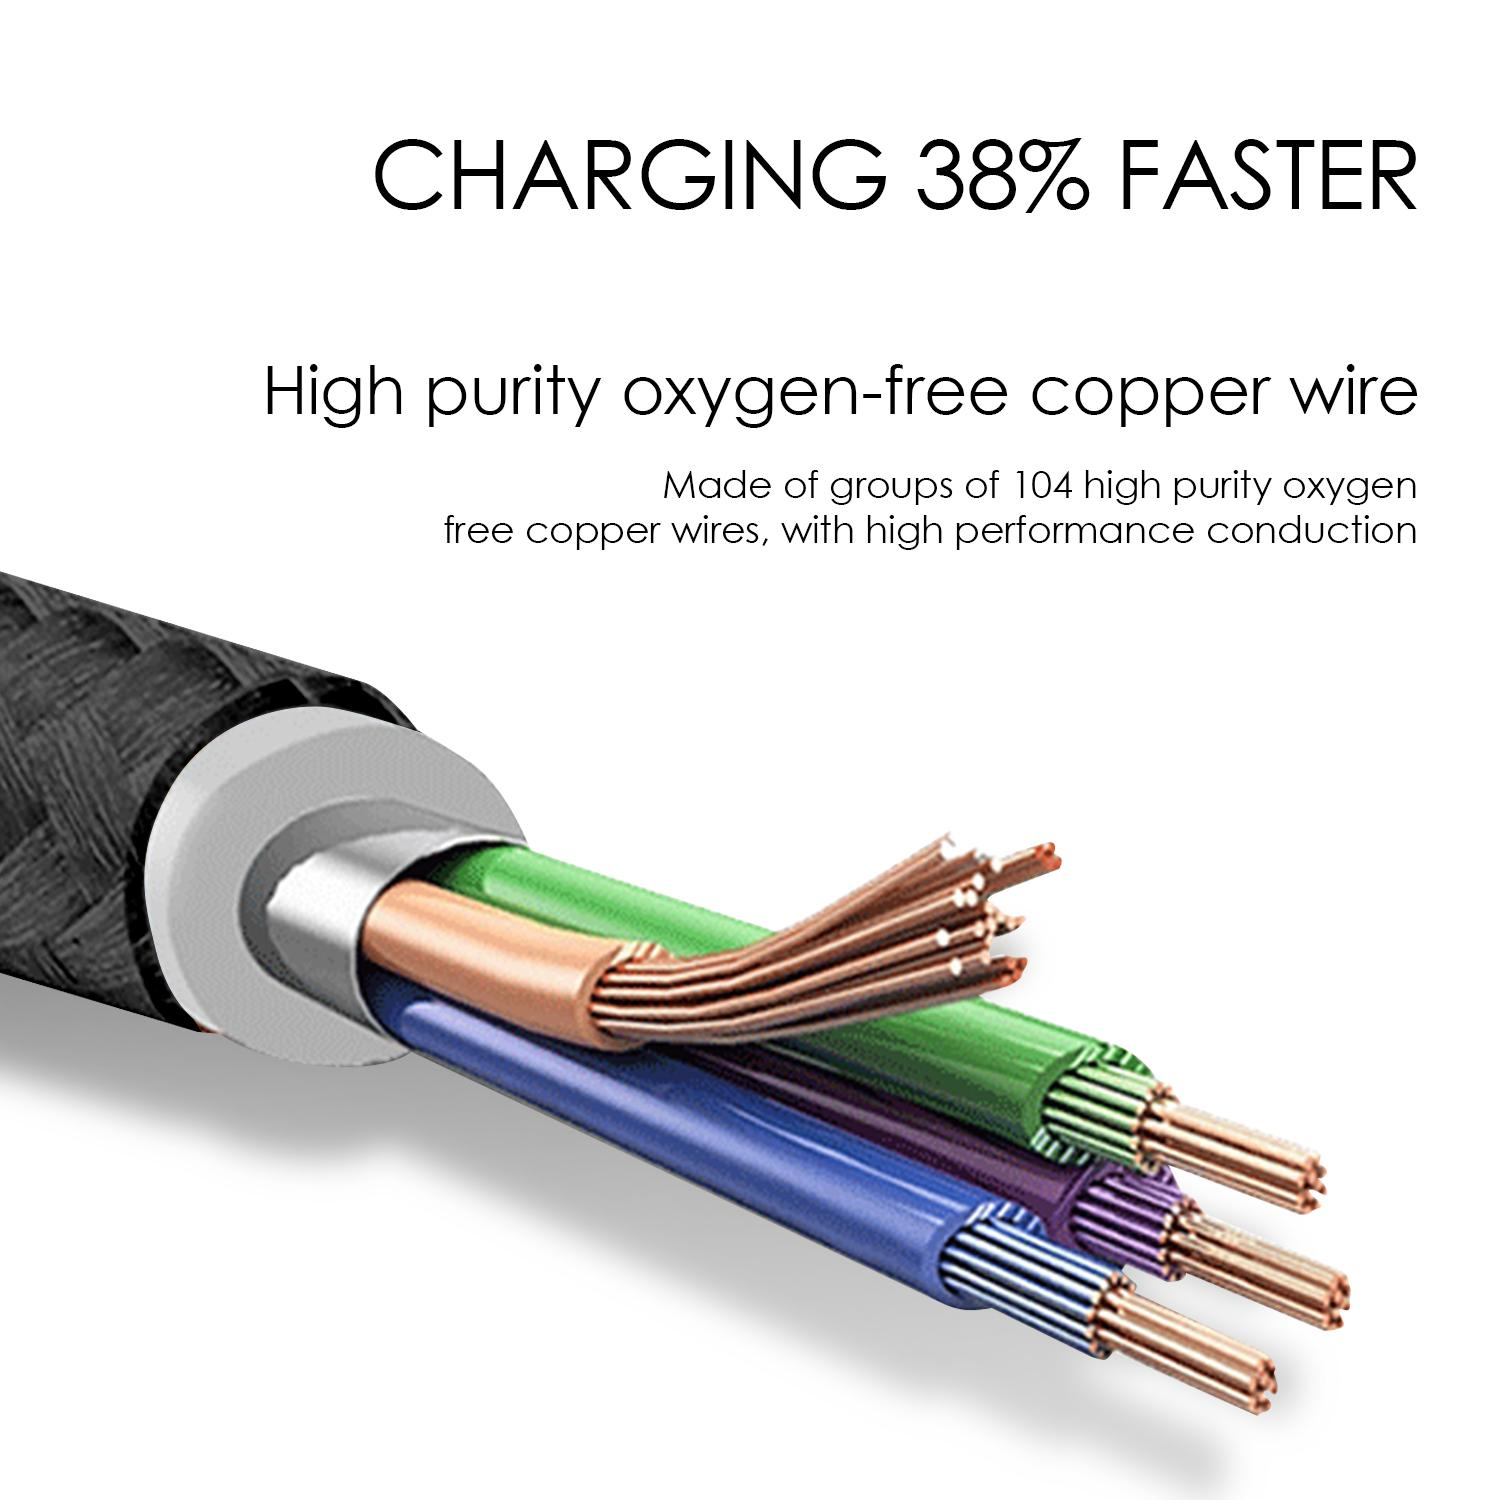 Fitur Uneed Nylon Kabel Data Type C 2m Max Current 2 1a Ucb01 1c Bolt Fast Charging 5a Usb 30 Silver 21a Ucb011c